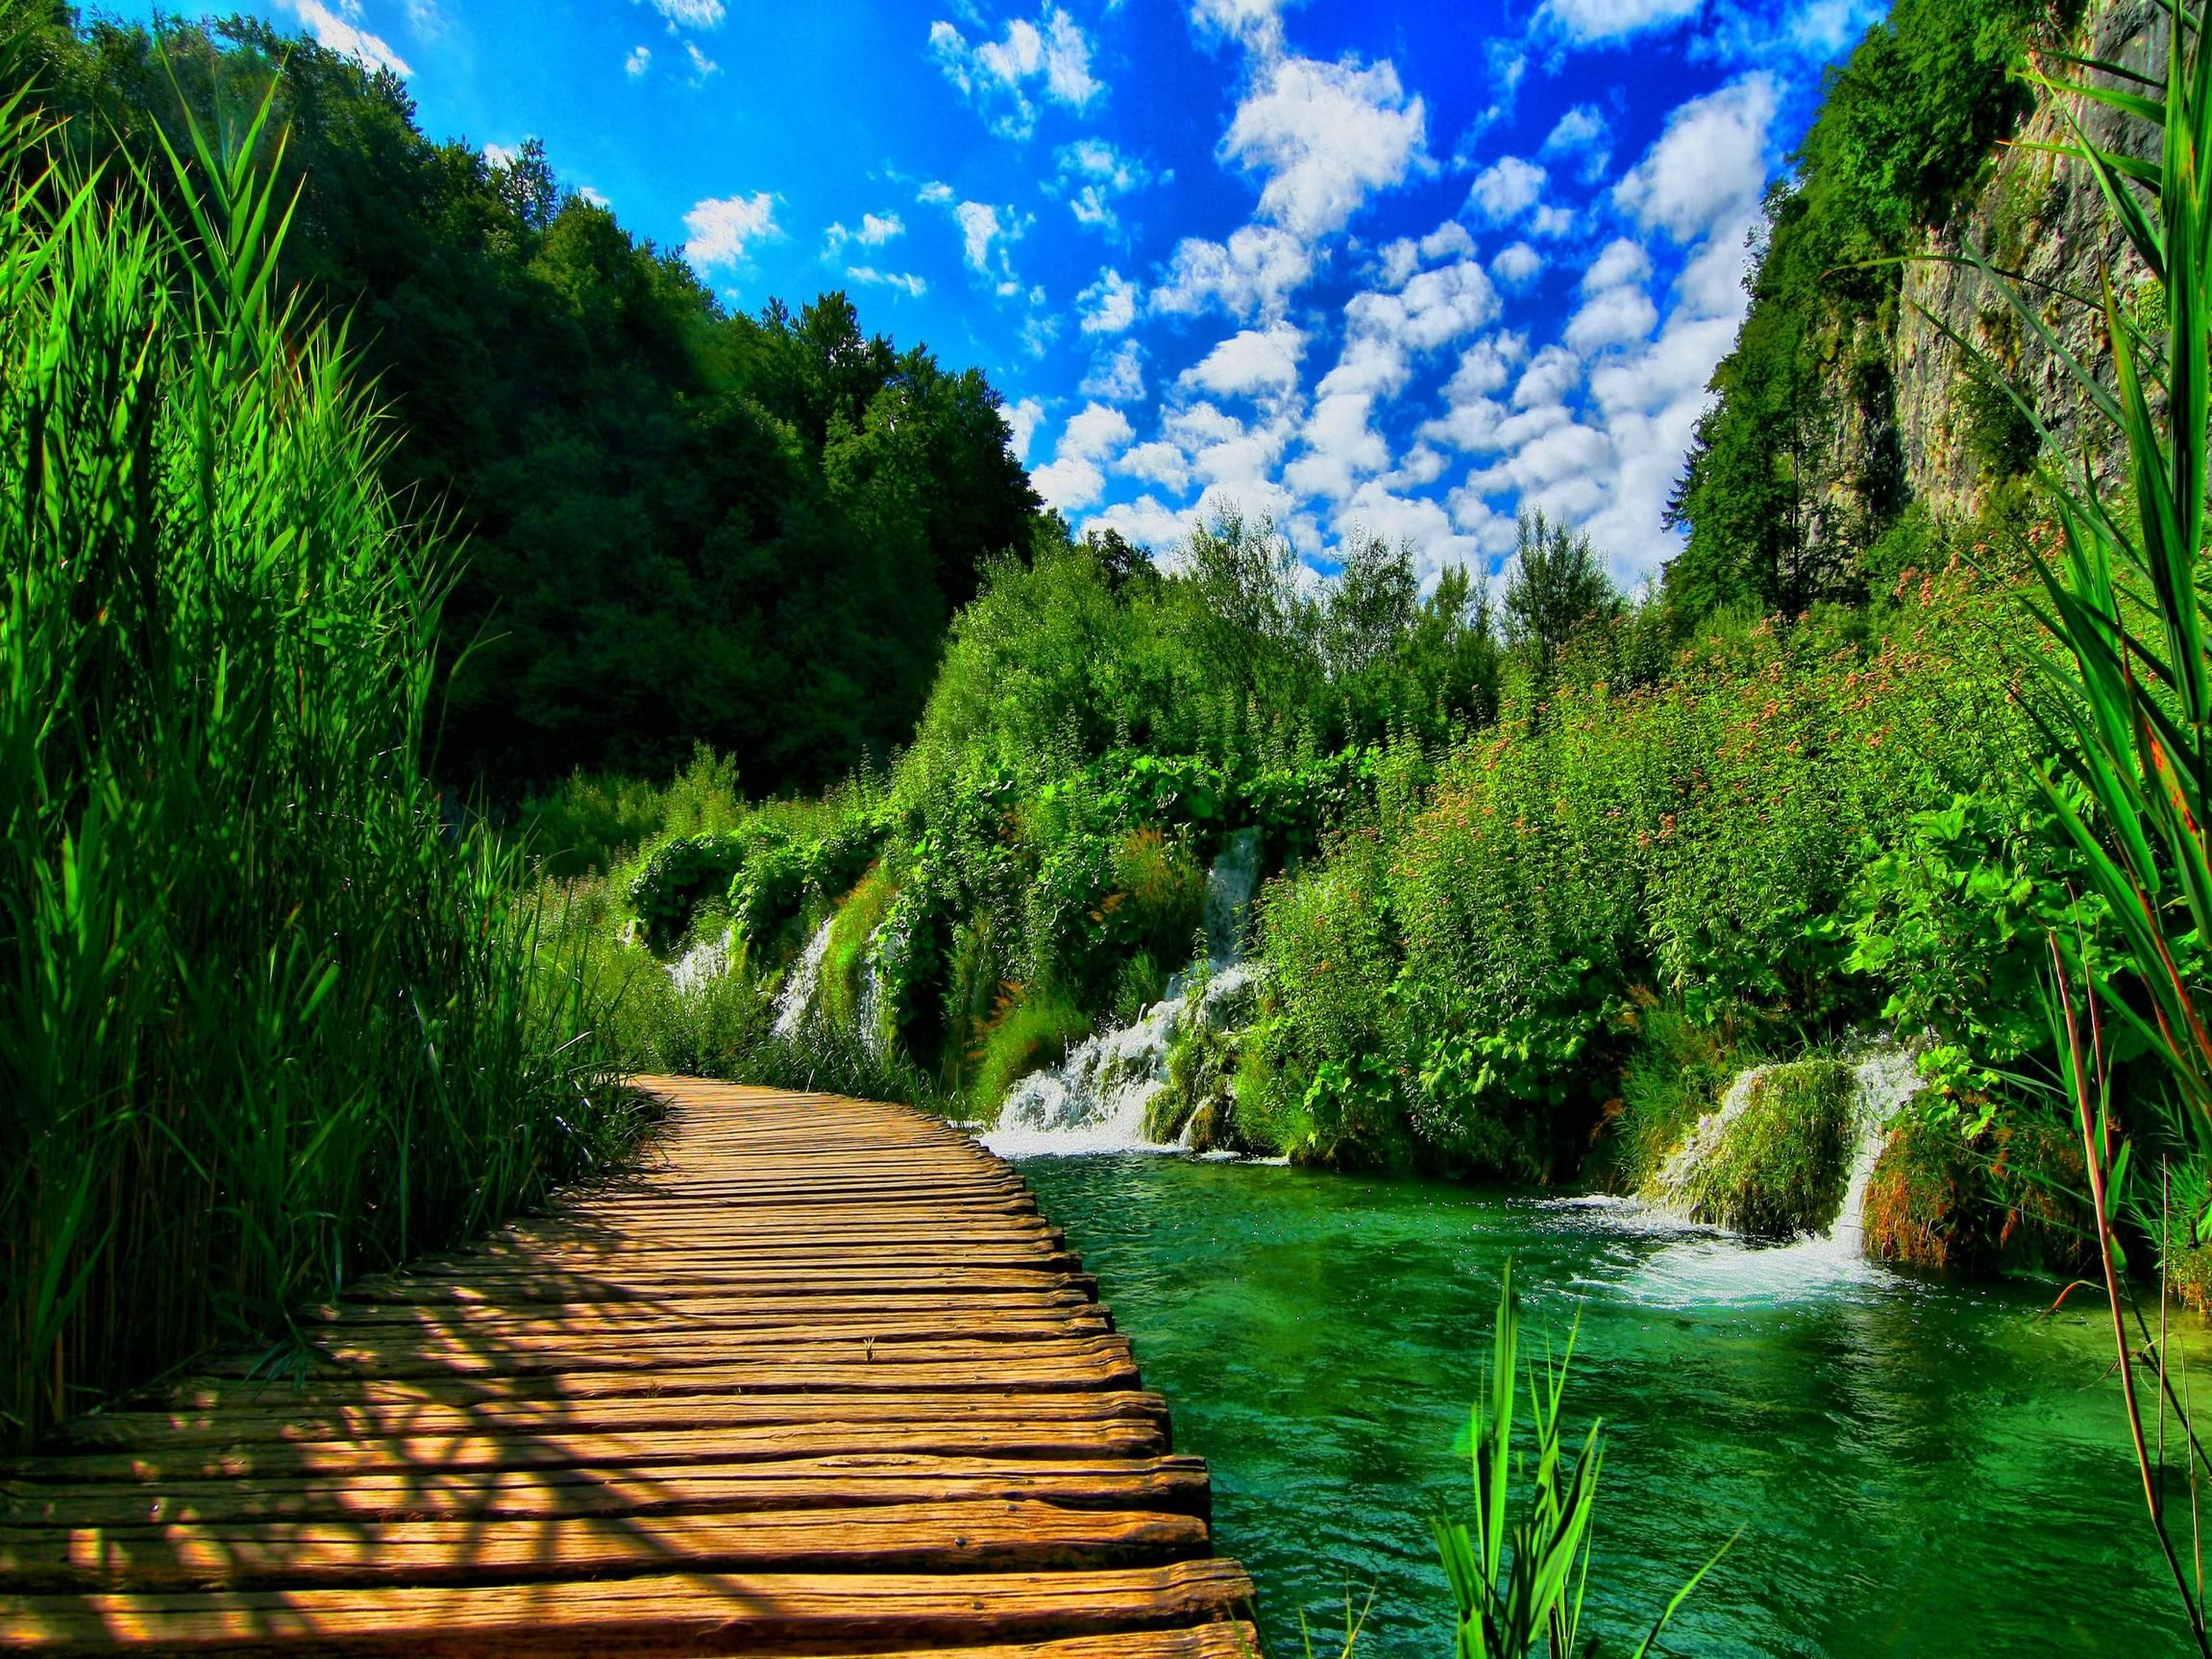 Download nature background pc HD - Free nature background pc Download Download Download nature ...